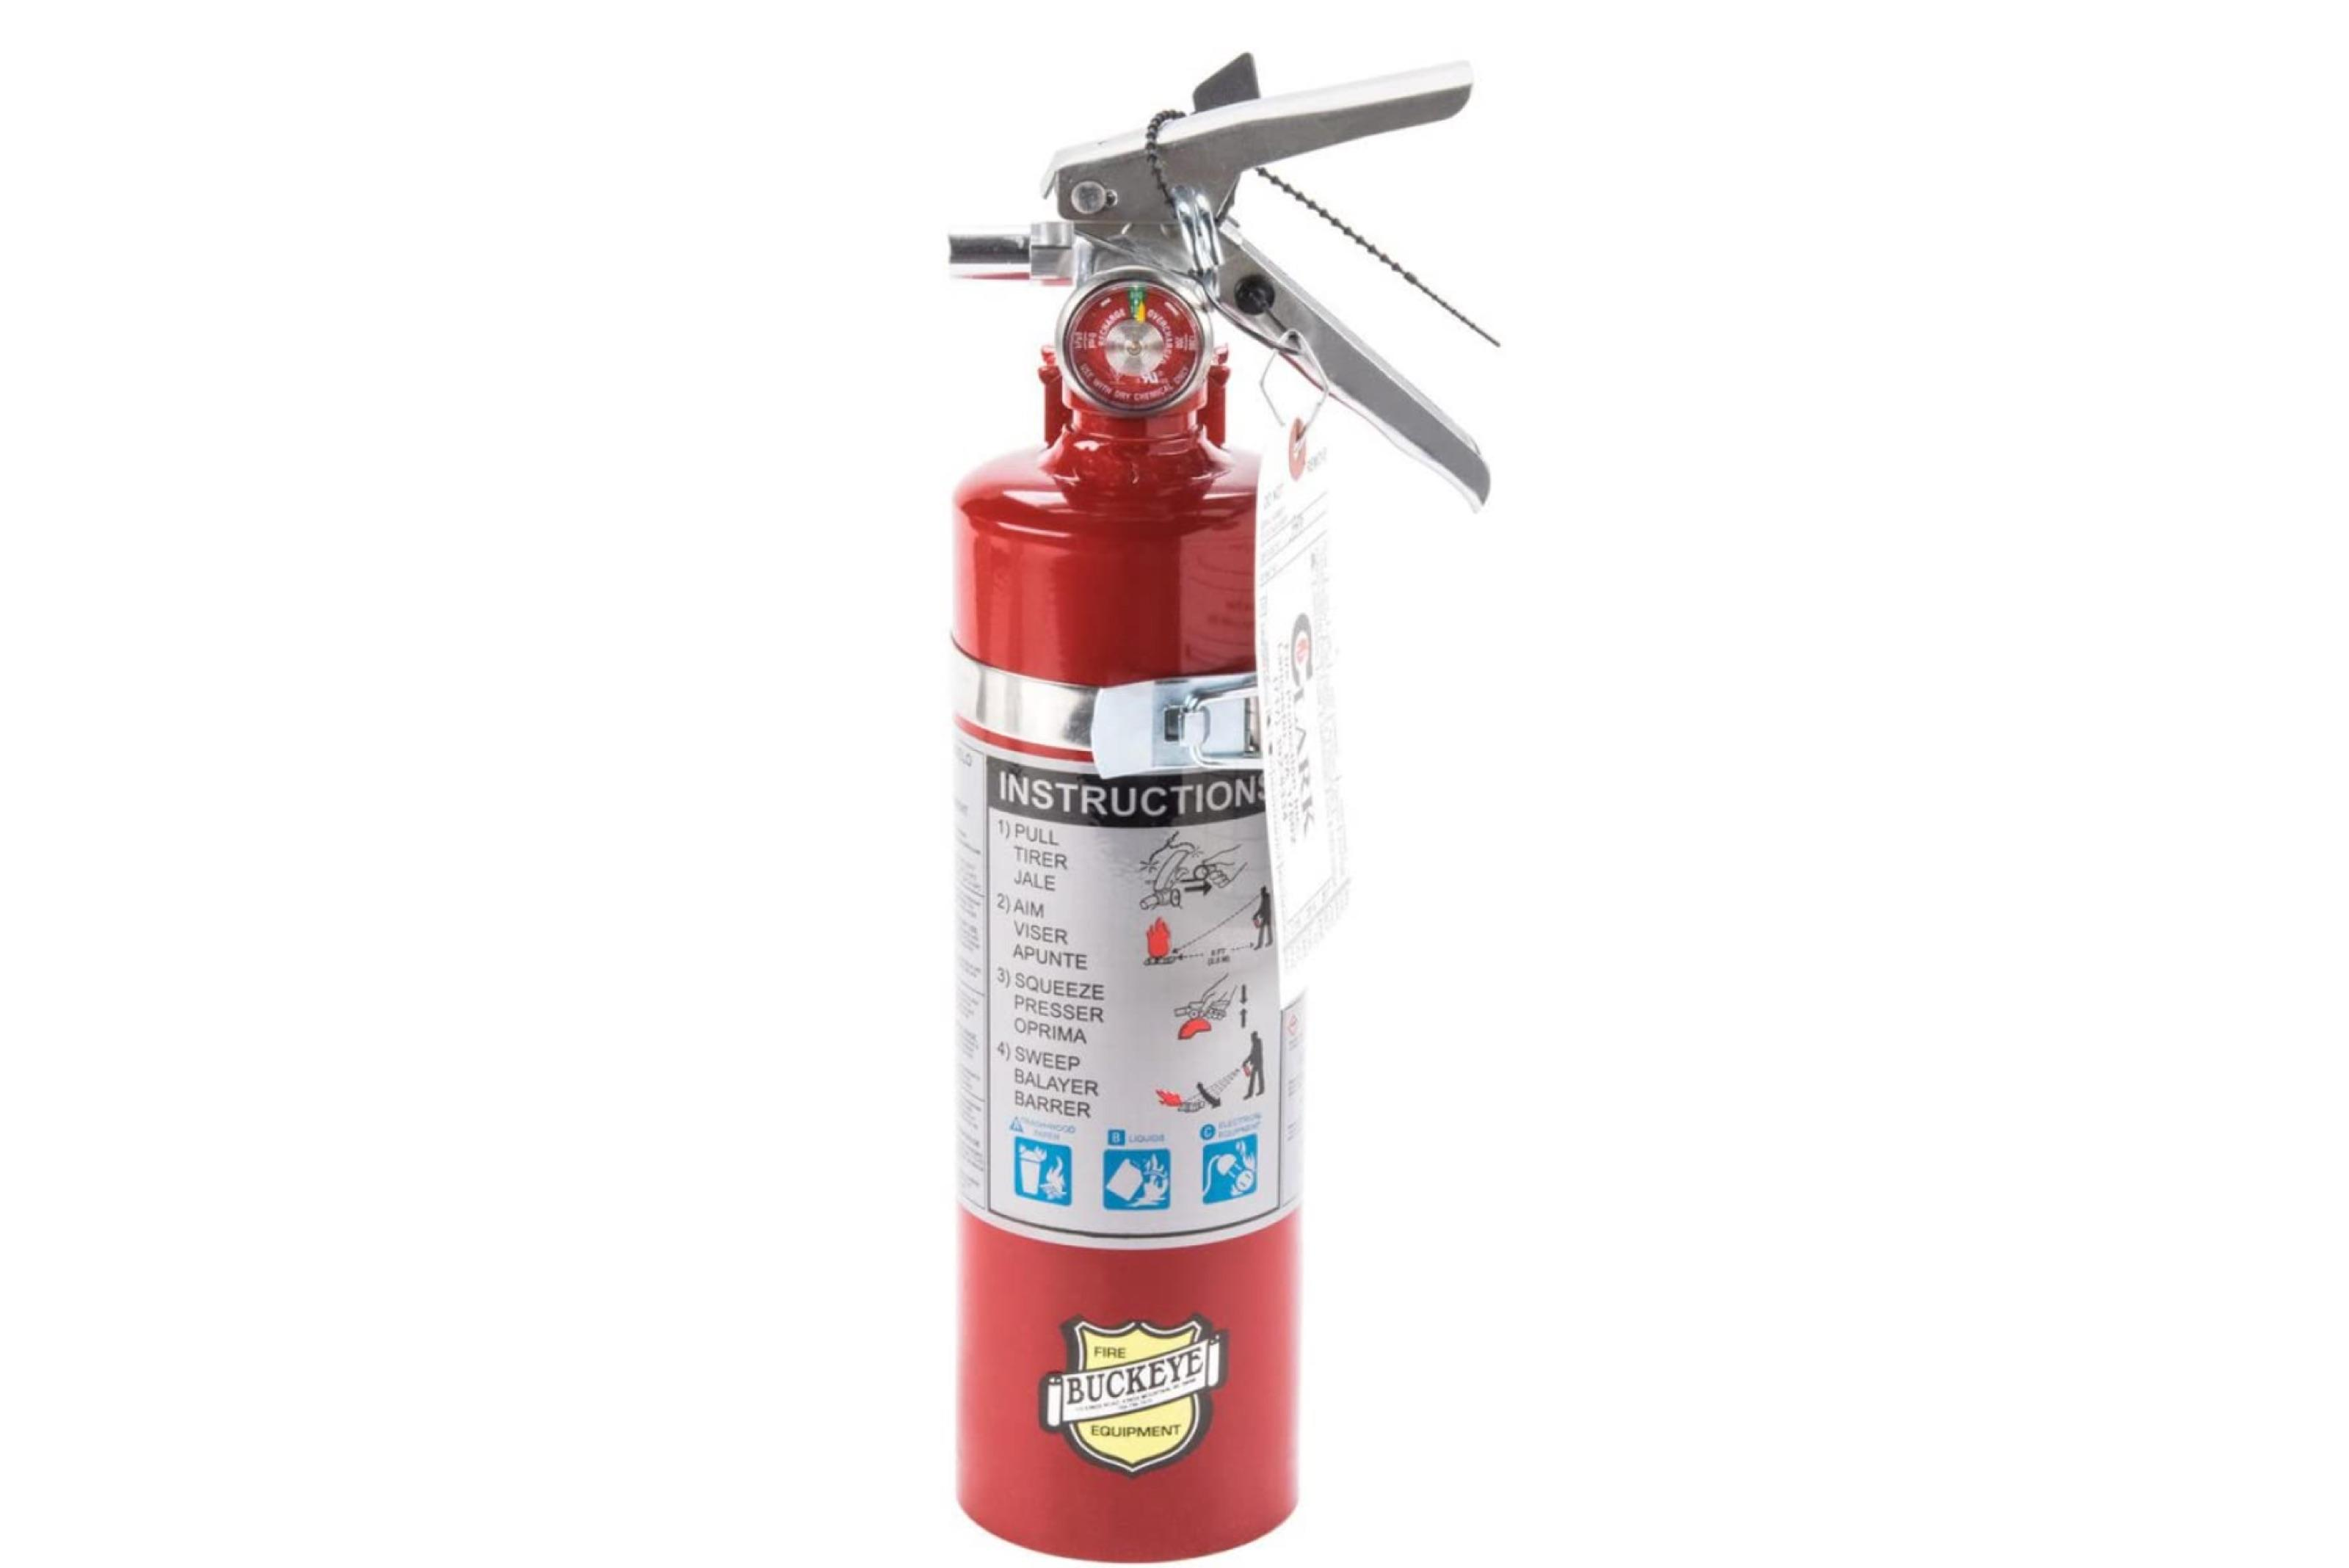 Buckeye 2.5lb fire extinguisher (4-pack)